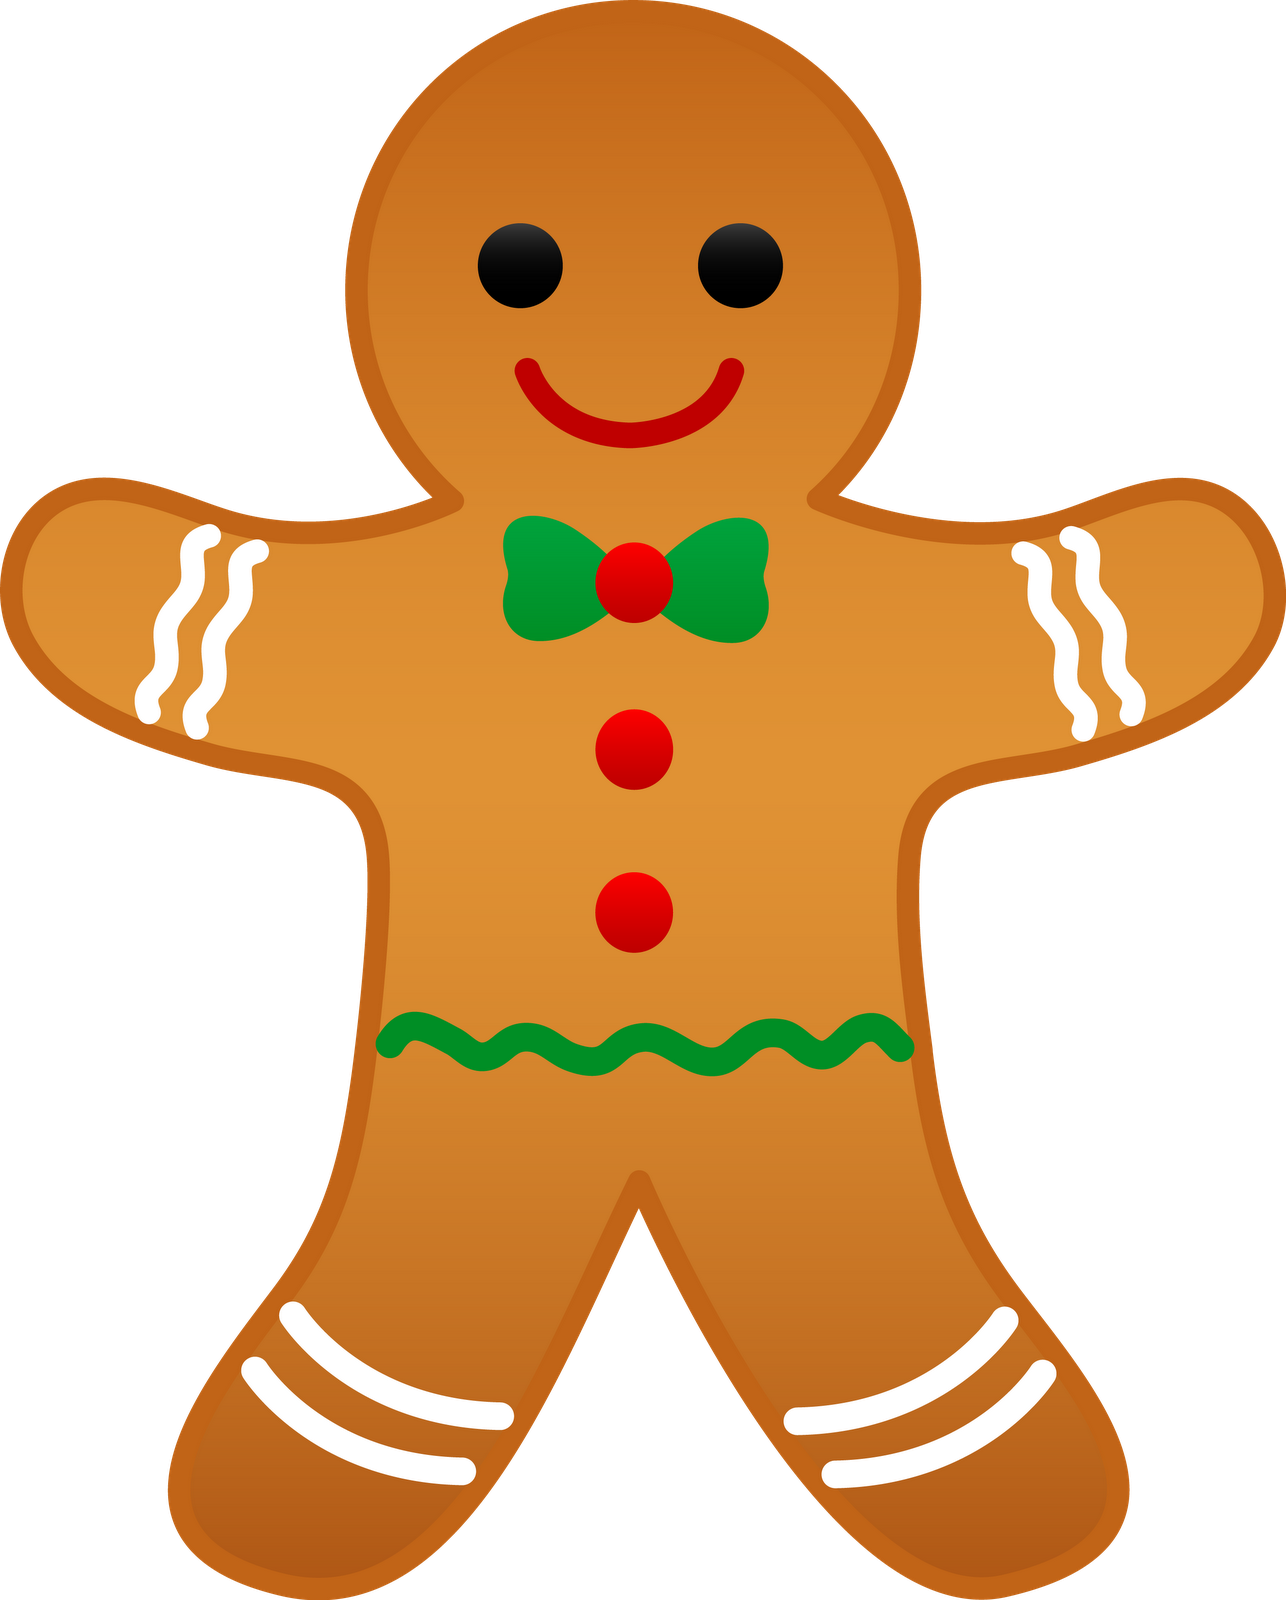 ... decoration on yellow Christmas gingerbread man smiling clip art image